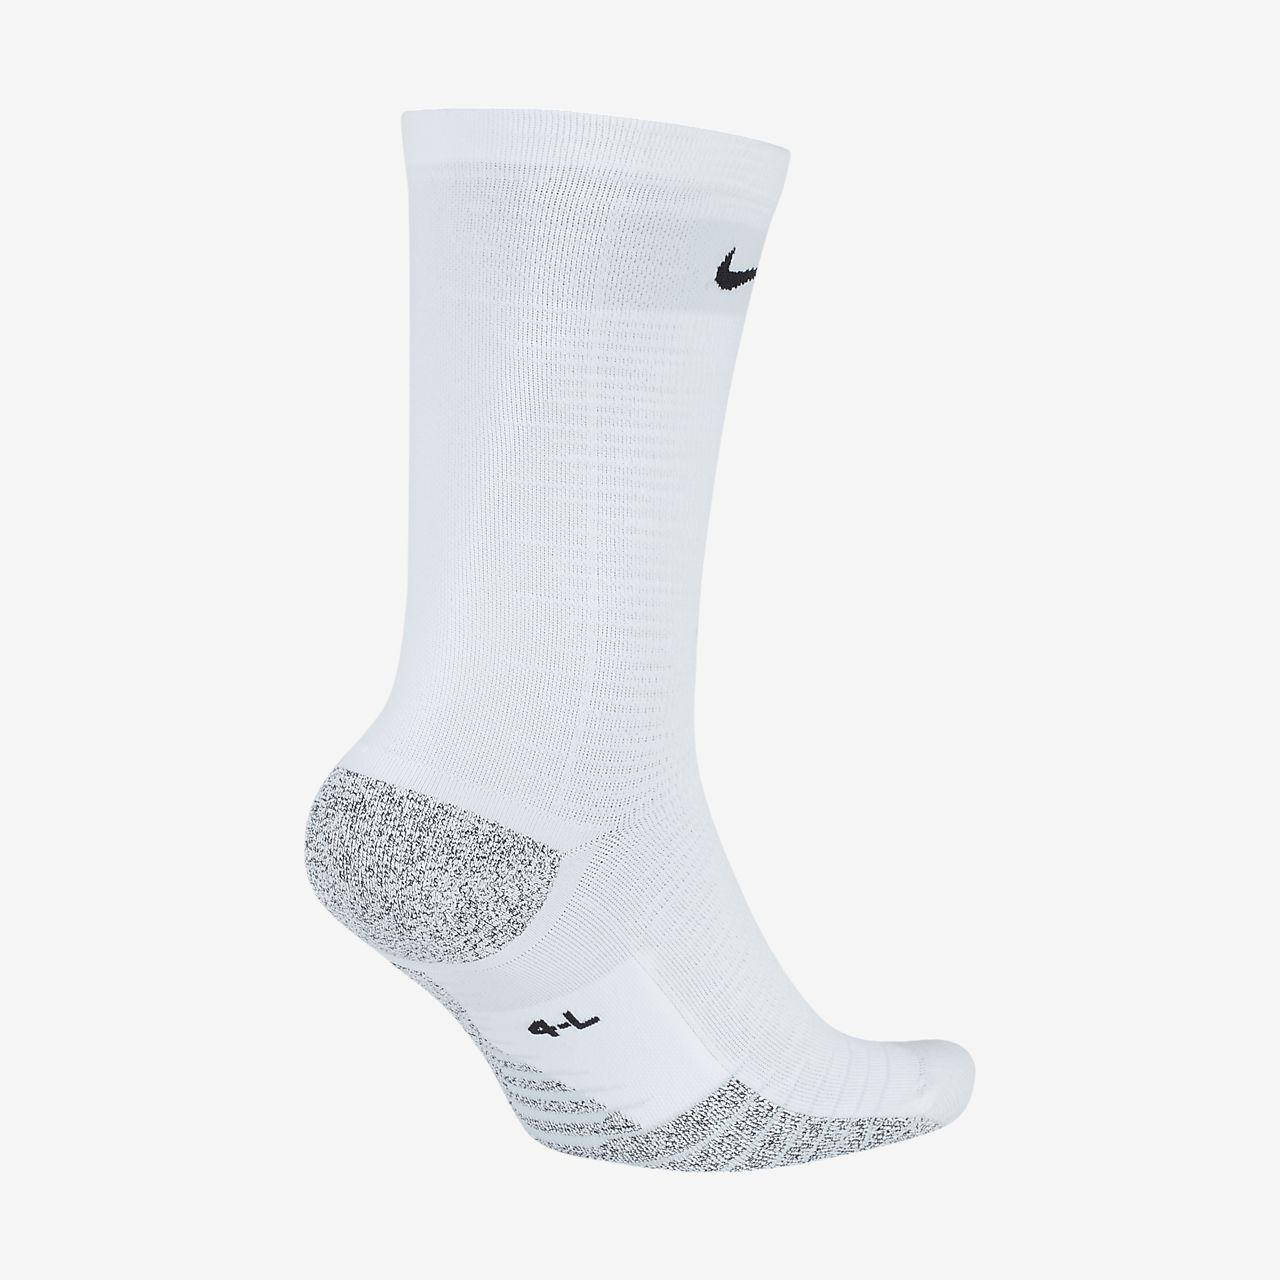 325bc3dec NikeGrip Strike Light Crew Football Socks. Nike.com AU